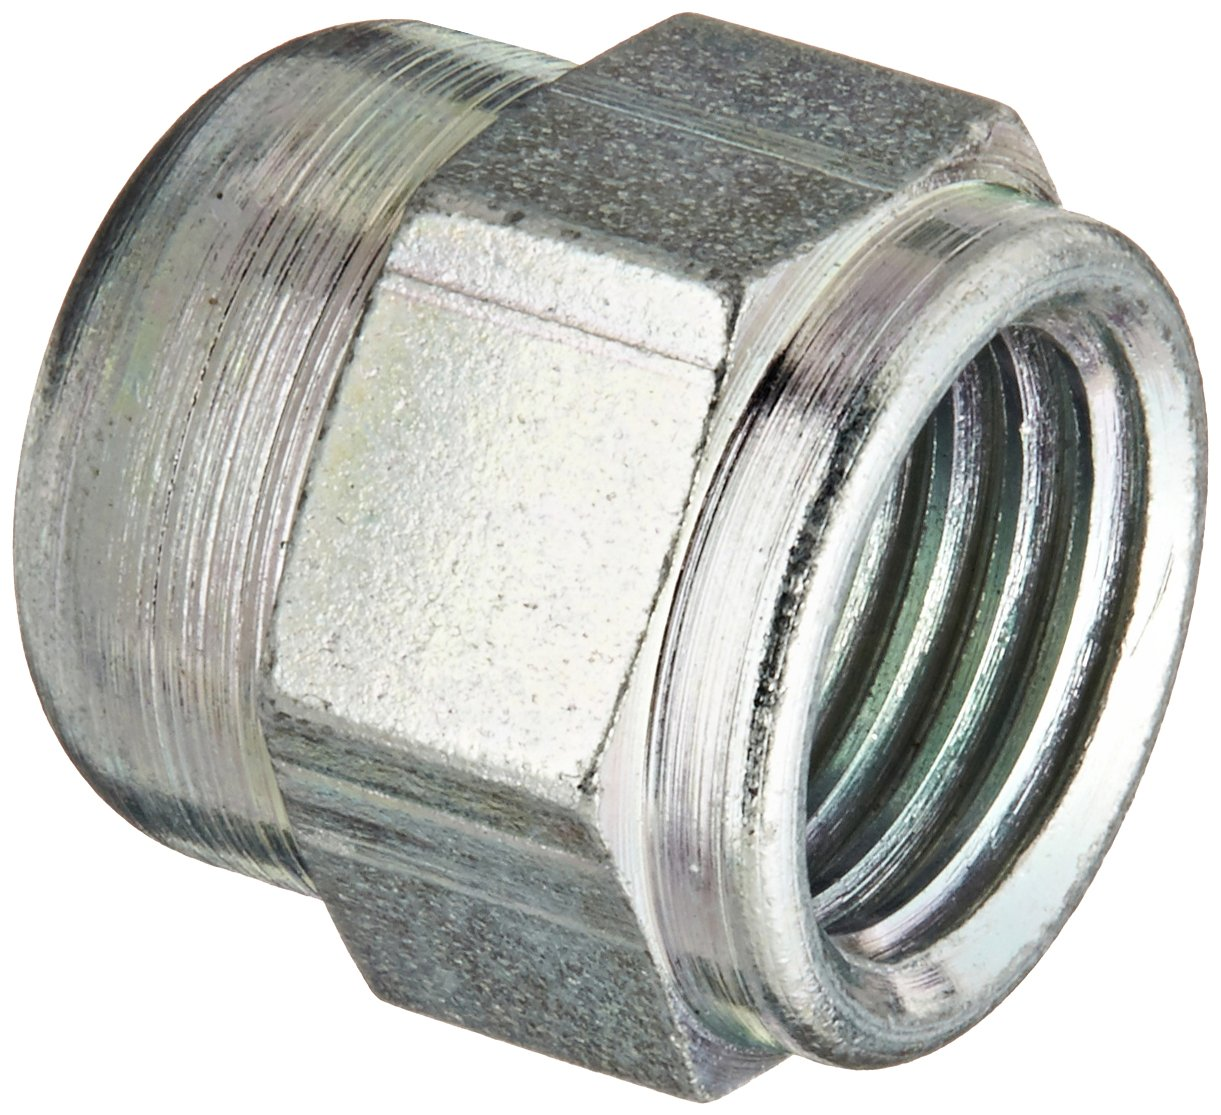 1 JIC JIC 37 Degree End Types Eaton Aeroquip 210292-16S Cap for Male JIC Fitting Carbon Steel f End Size 1 Tube OD 1 Tube OD